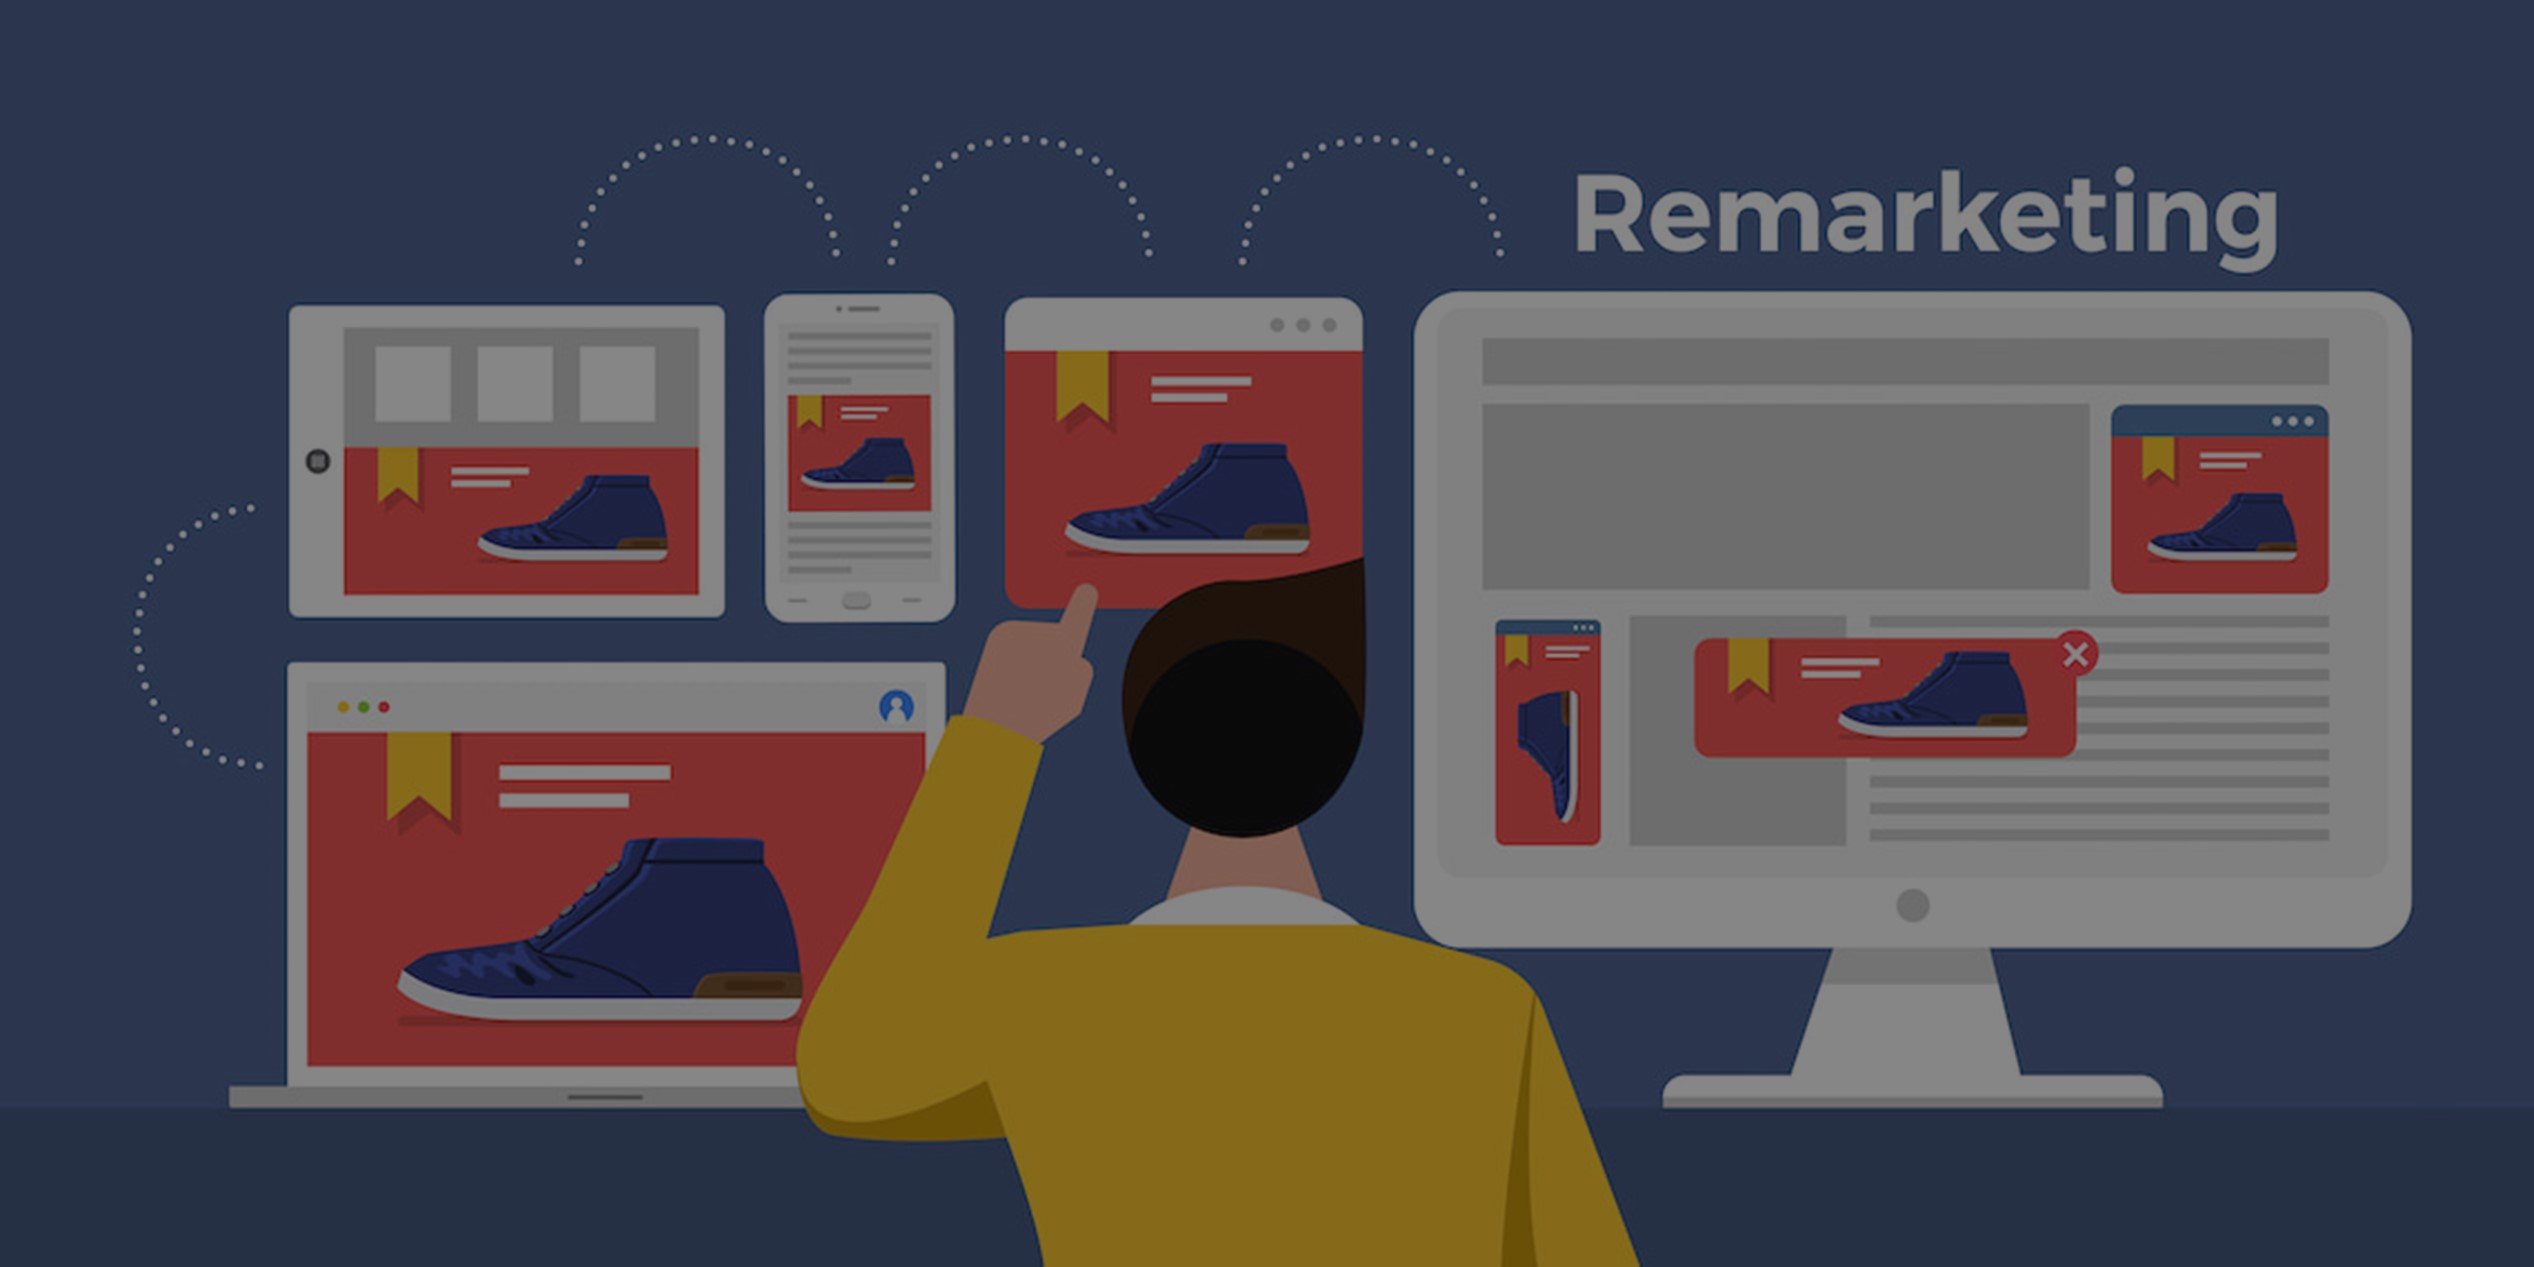 Remarketing-mejores-resultados-conversiones-marketing-digital-campañas-lima-perú